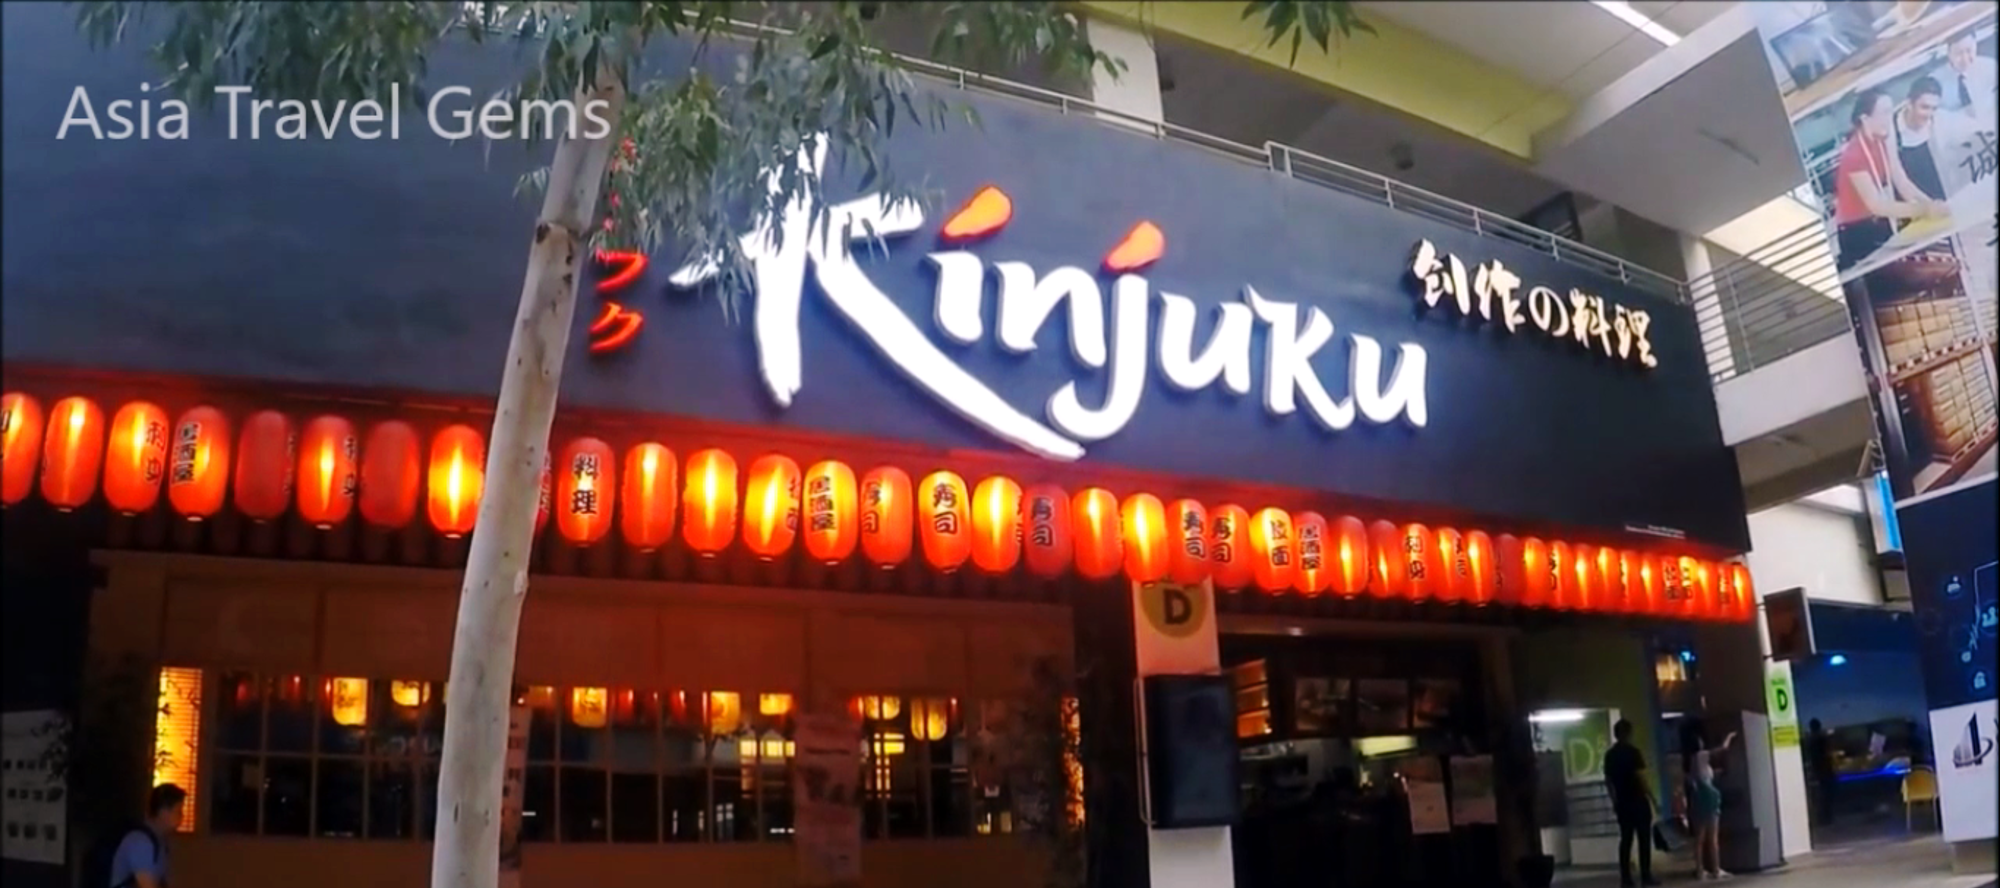 Best Places To Eat In Kuala Lumpur - Kinjuku SetiaWalk Mall Review - Header